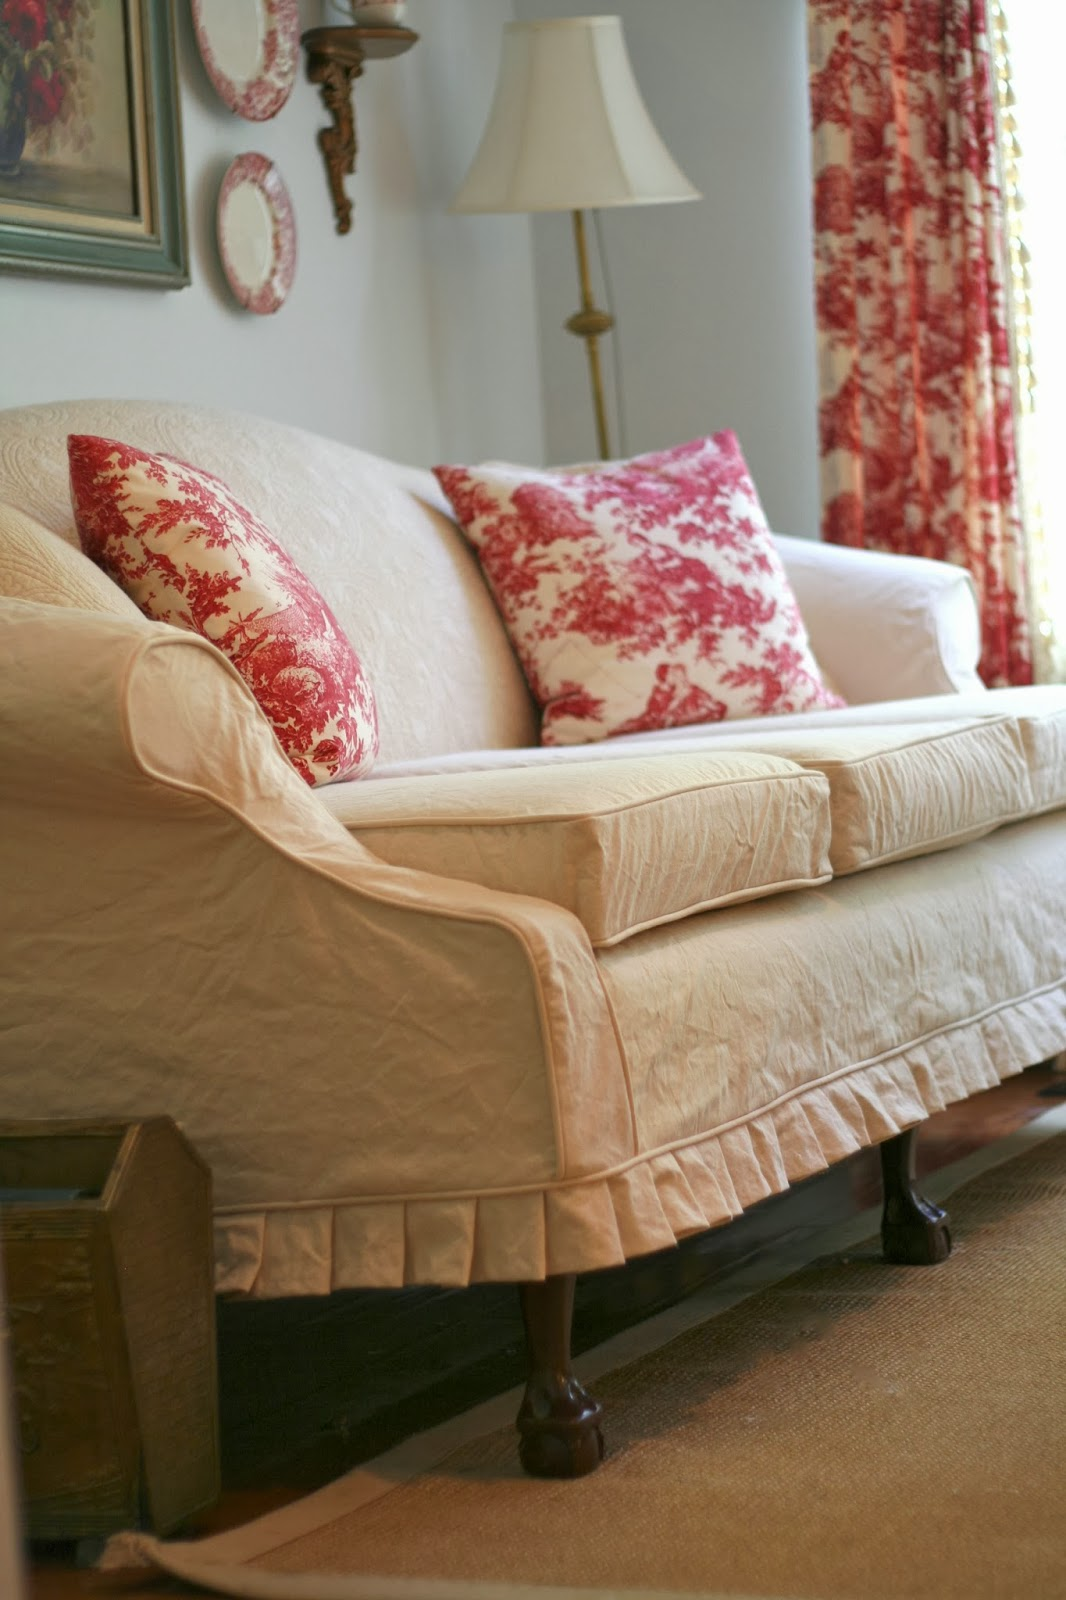 How To Make A Slipcover For Sofa Chair Mission Style Table Cherry Custom Slipcovers By Shelley Vintage Quilt Couch